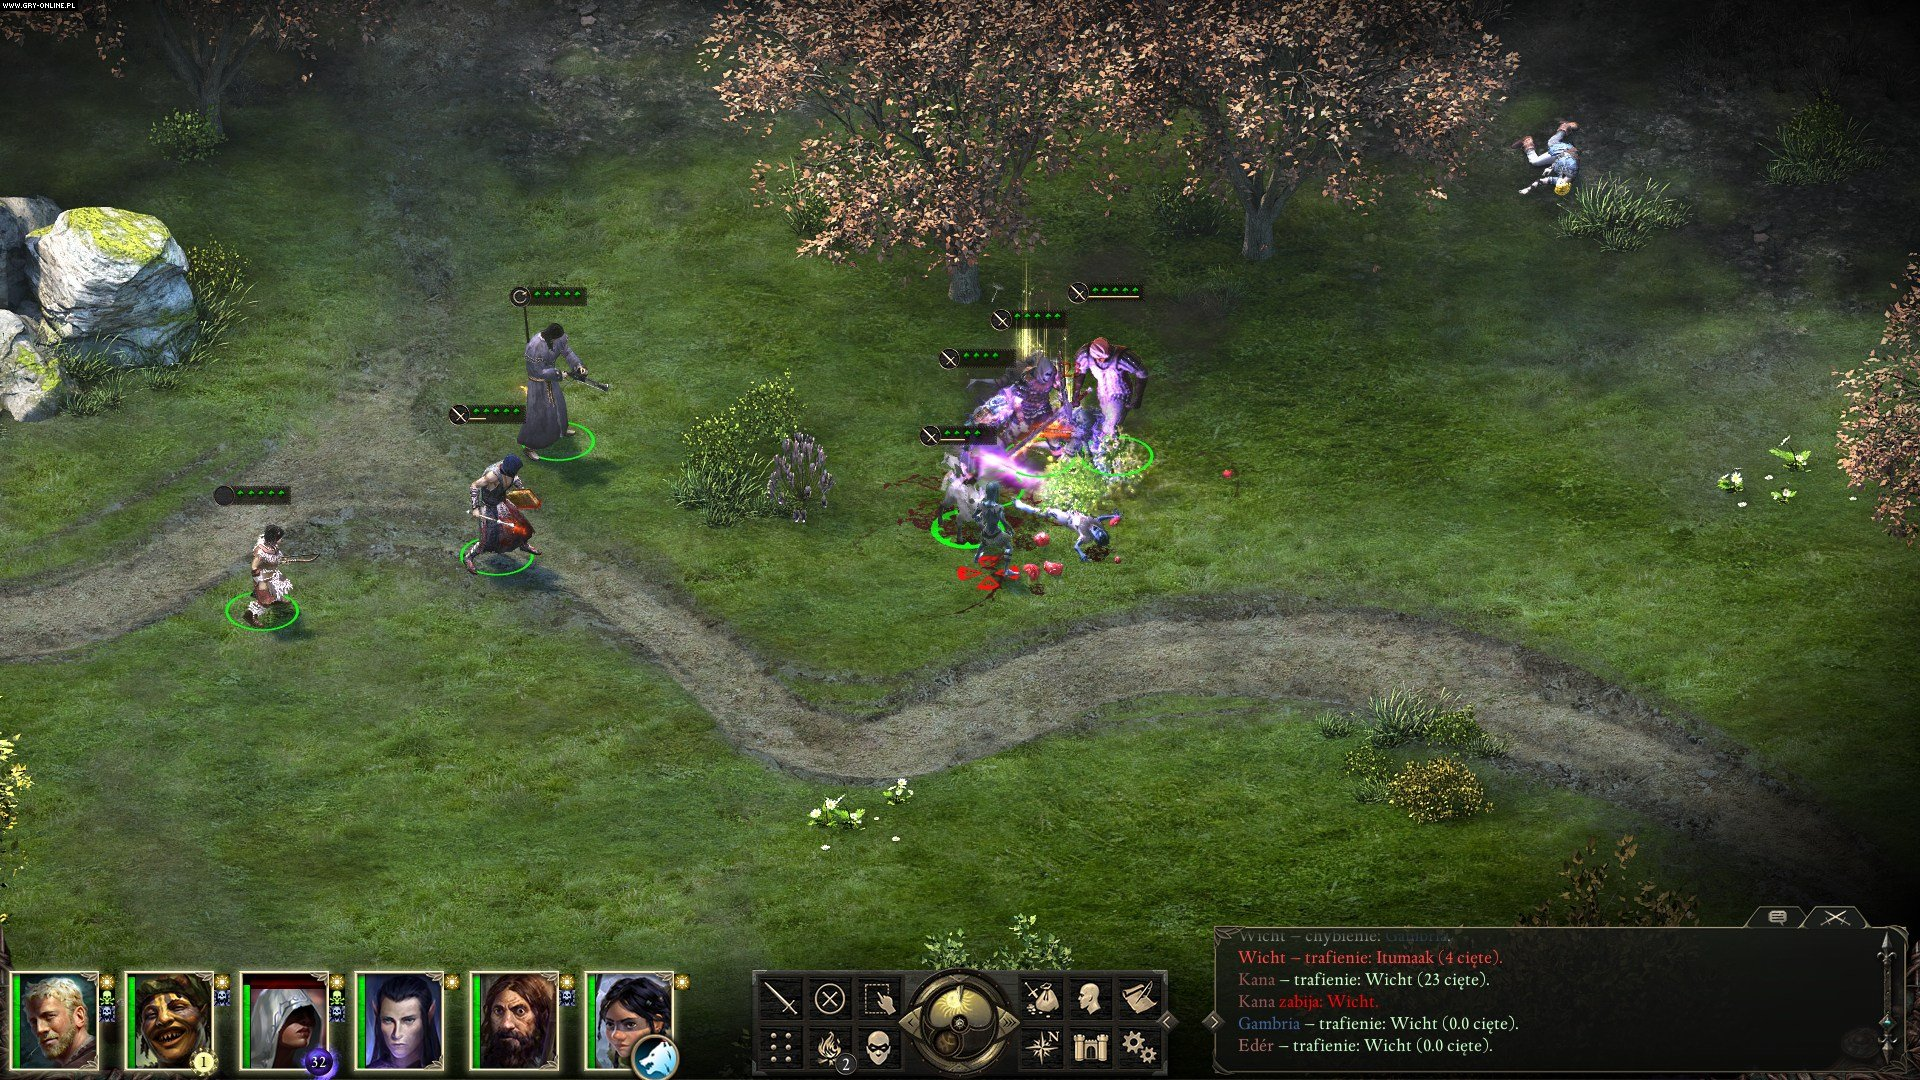 Pillars of Eternity PC Games Image 8/93, Obsidian Entertainment, Paradox Interactive